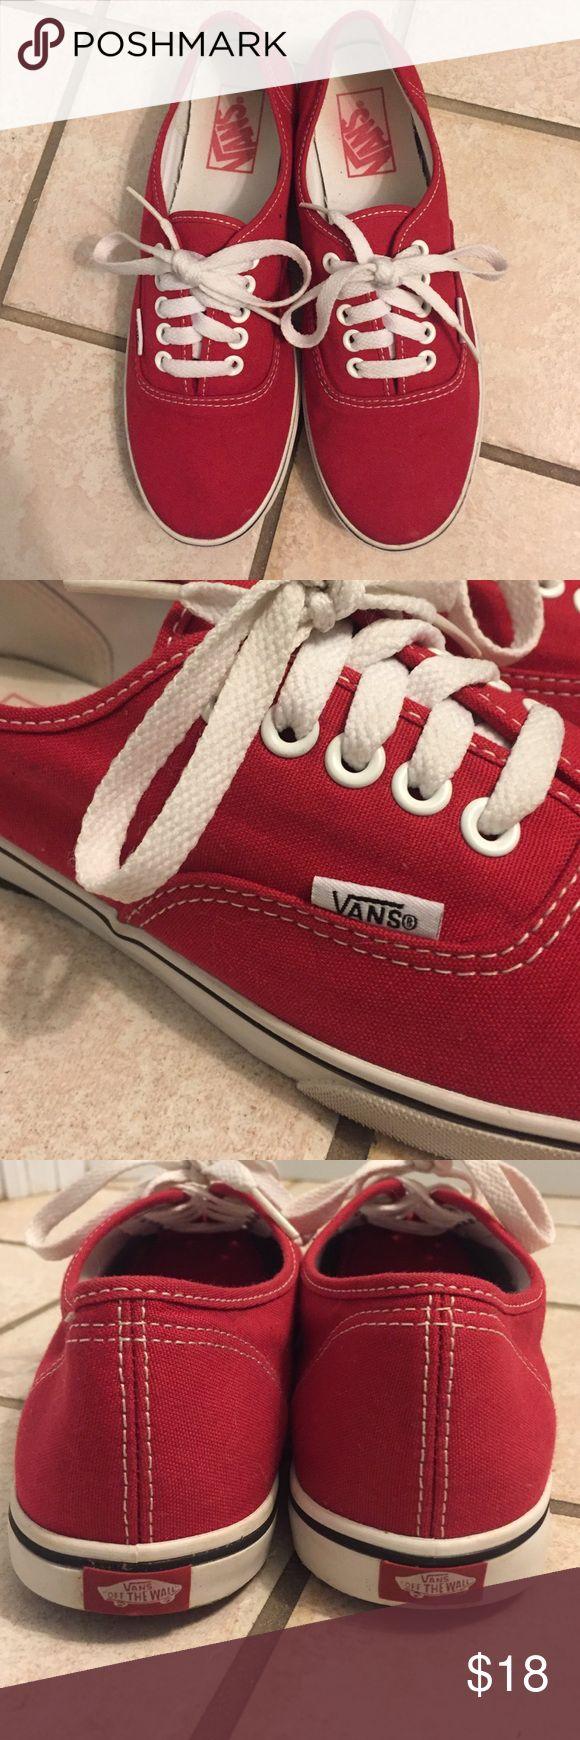 Vans Authentic Lo Pro sneakers Red vans sneakers. Only worn a few times. Vans Shoes Sneakers